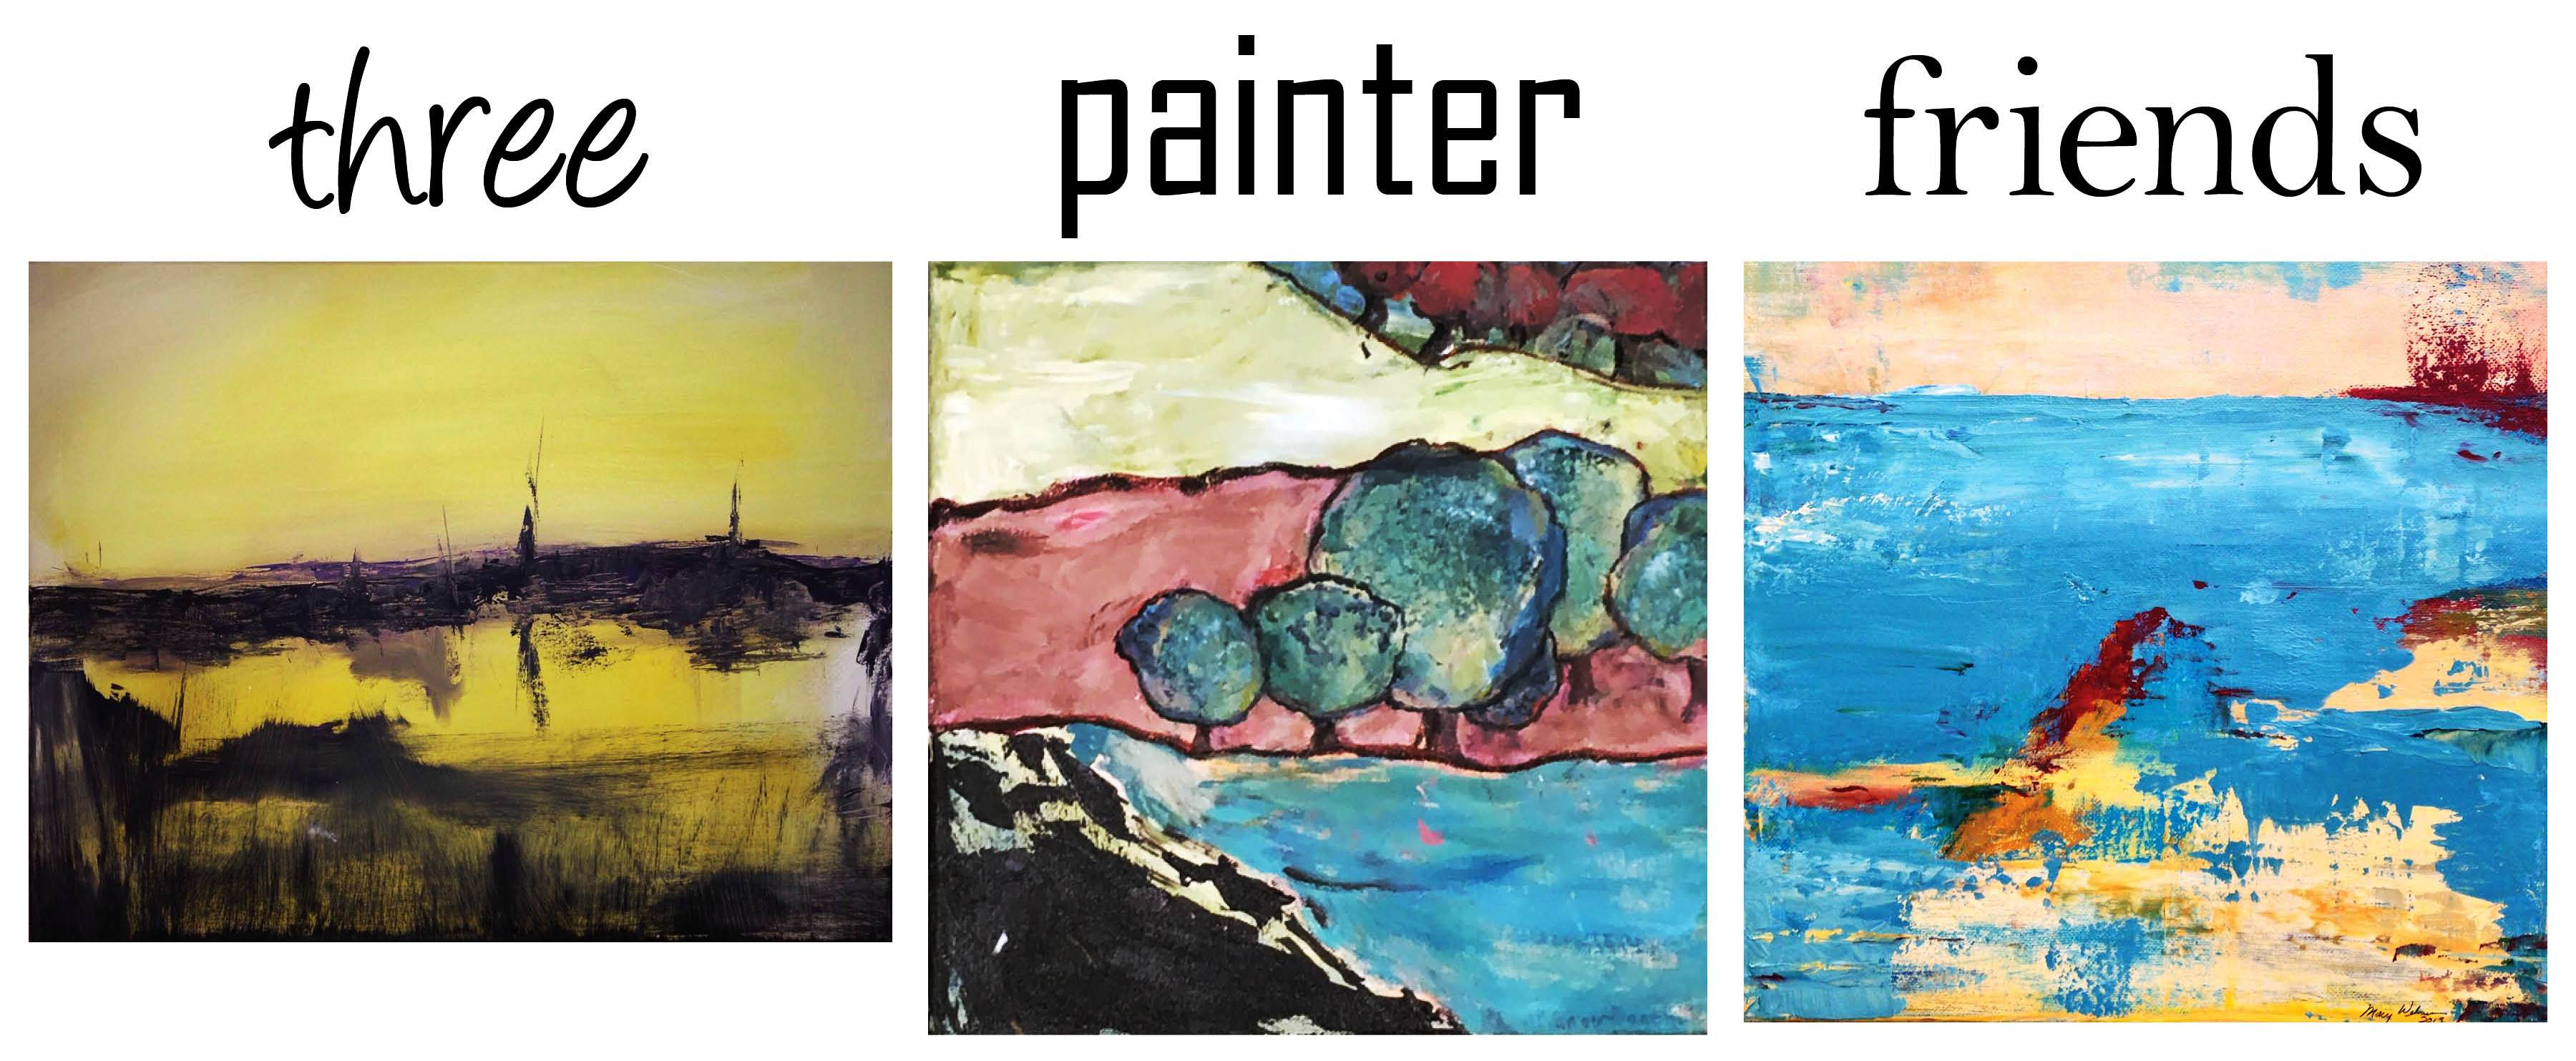 'Three Painter Friends' exhibit at gallery in July